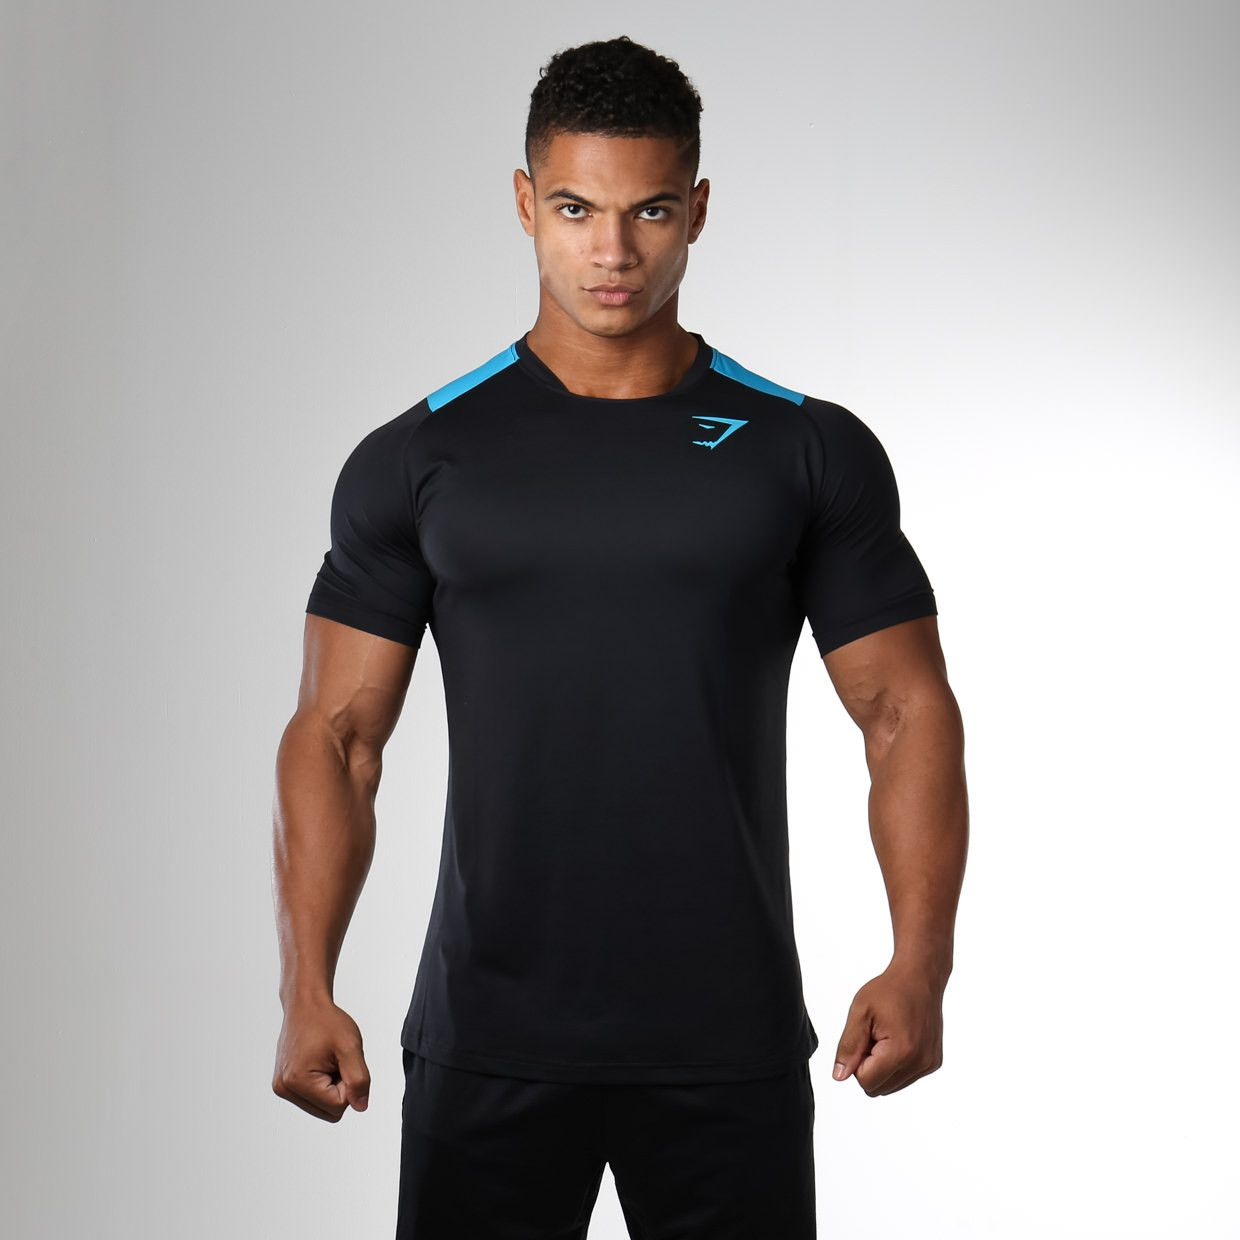 Your Workout Needs A High Performance Workout T Shirt For Your Level Of Endurance Wear The Transcendent T Shirt The Fitness Fashion Sport Outfits Black Shirt